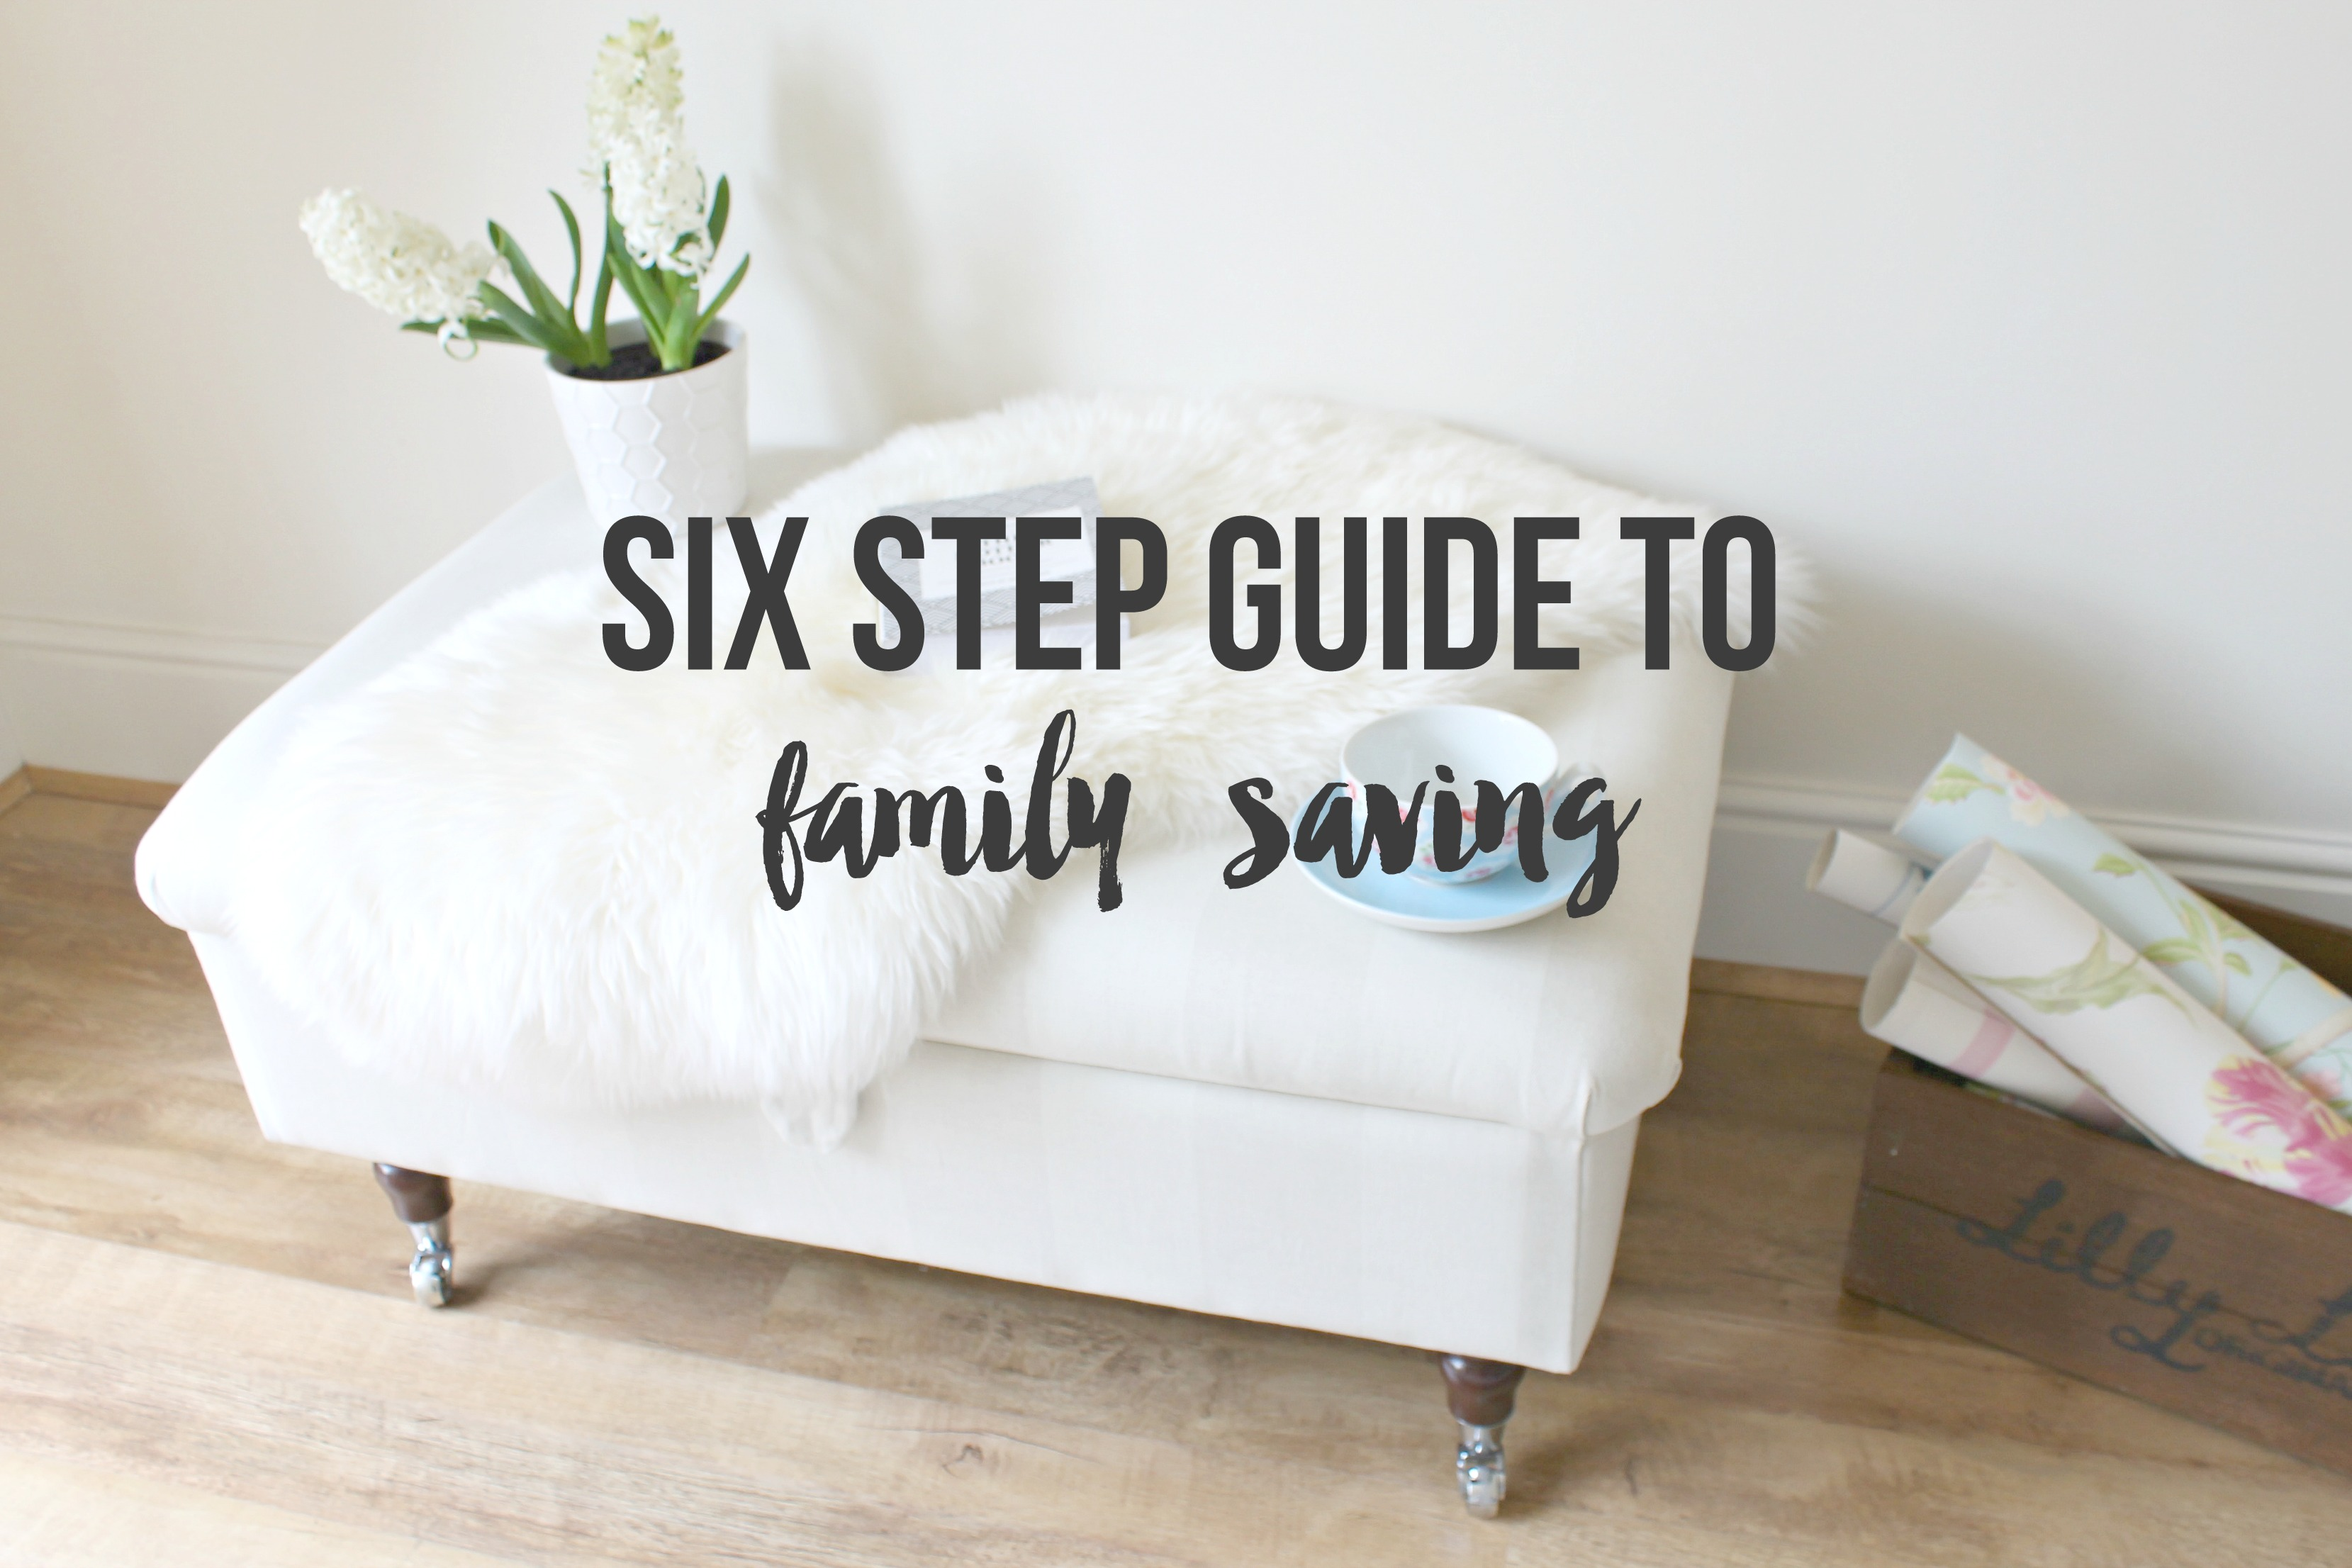 Six Step Guide to family saving